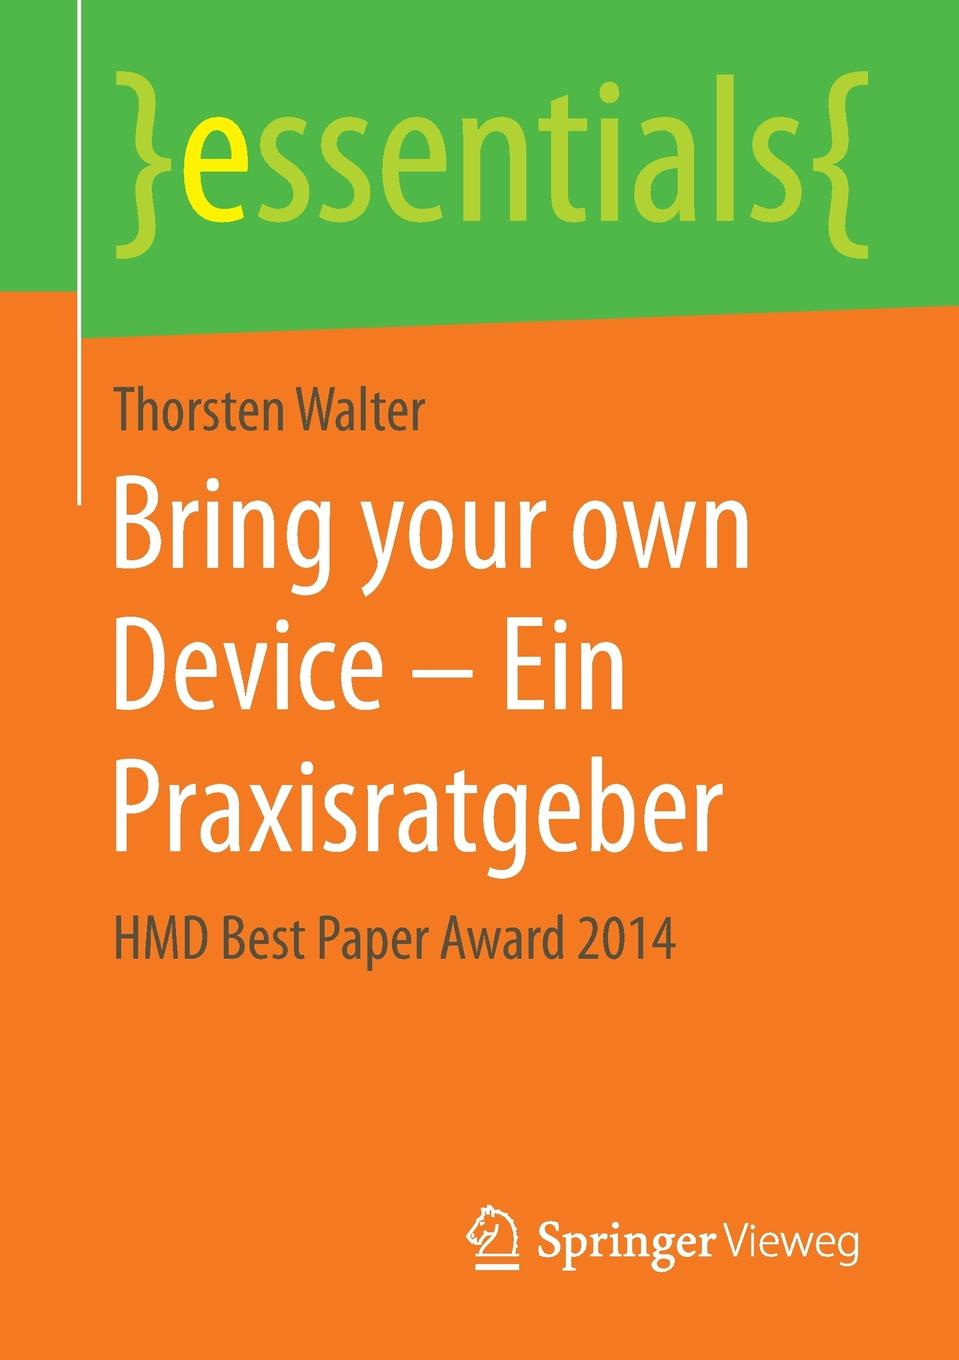 Thorsten Walter Bring your own Device - Ein Praxisratgeber. HMD Best Paper Award 2014